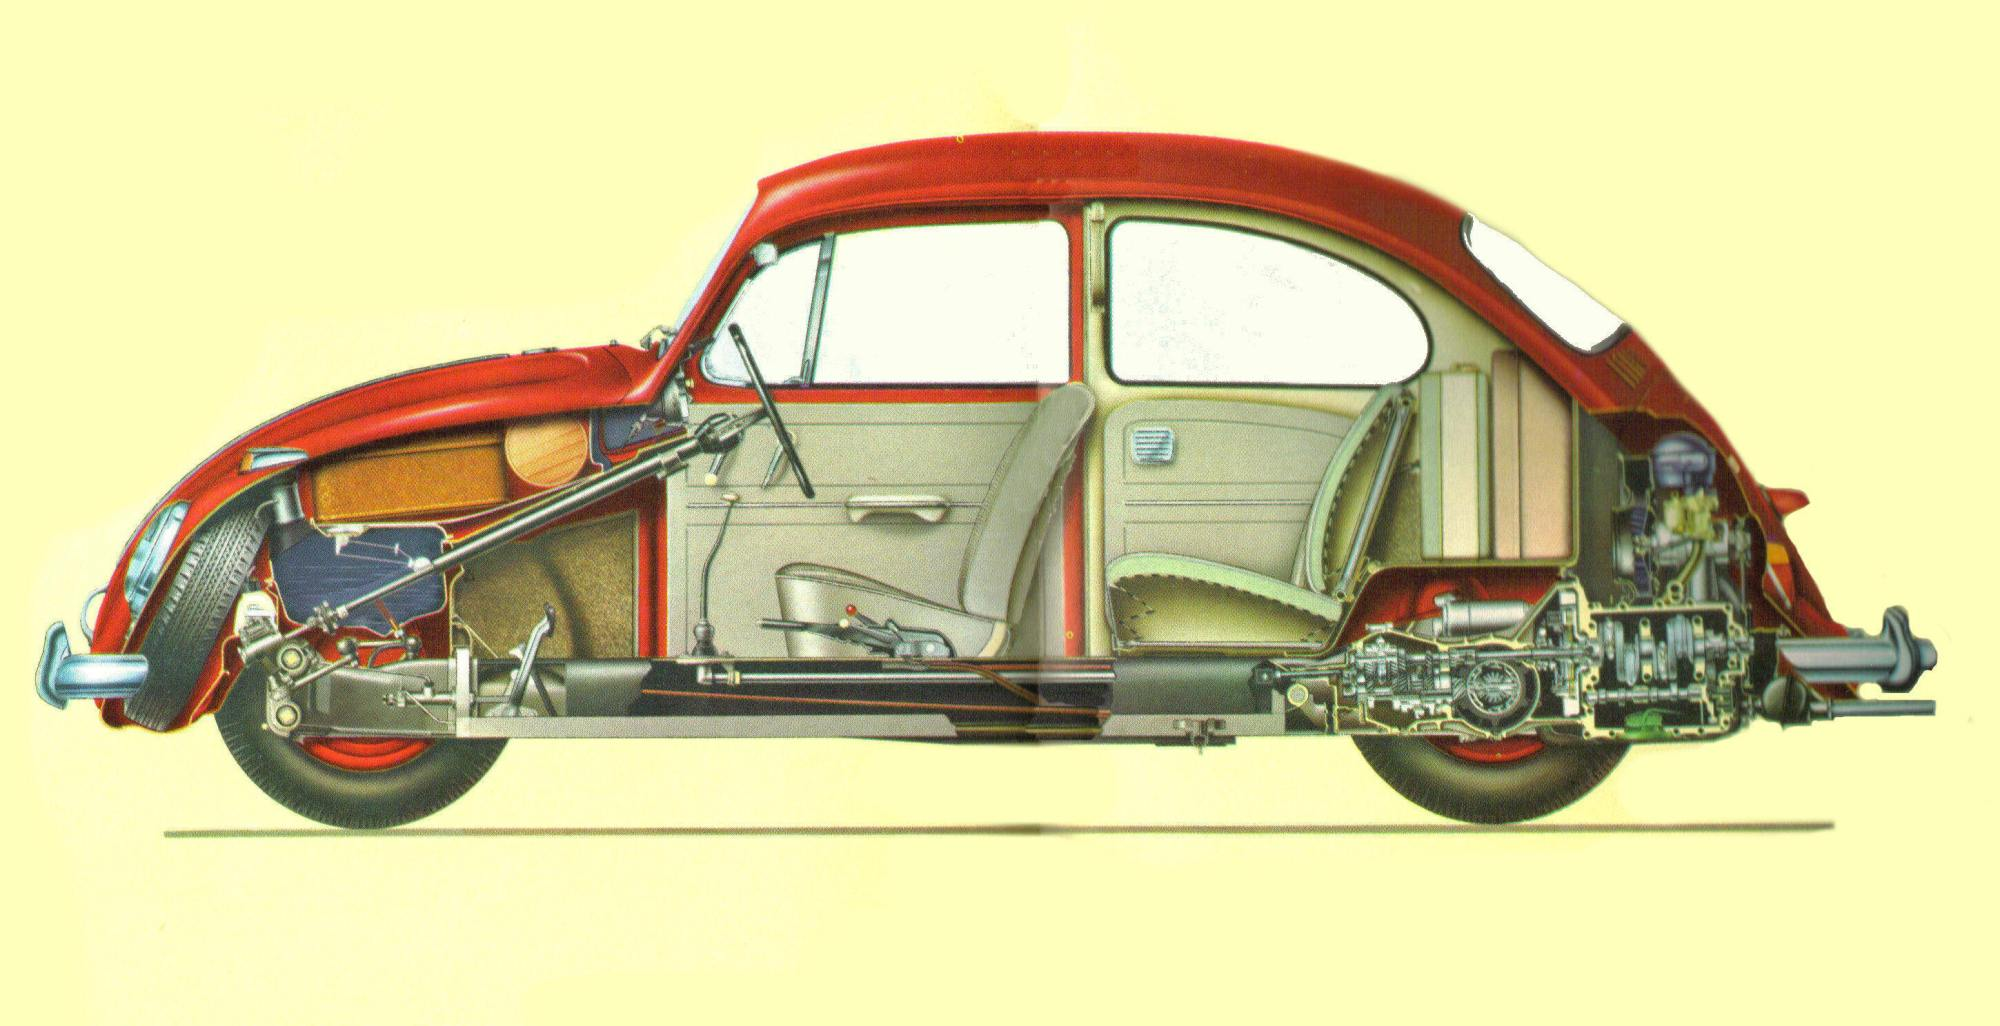 hight resolution of vw bug engine diagram wiring diagram forward vw bug engine wiring diagram vw beetle diagram wiring